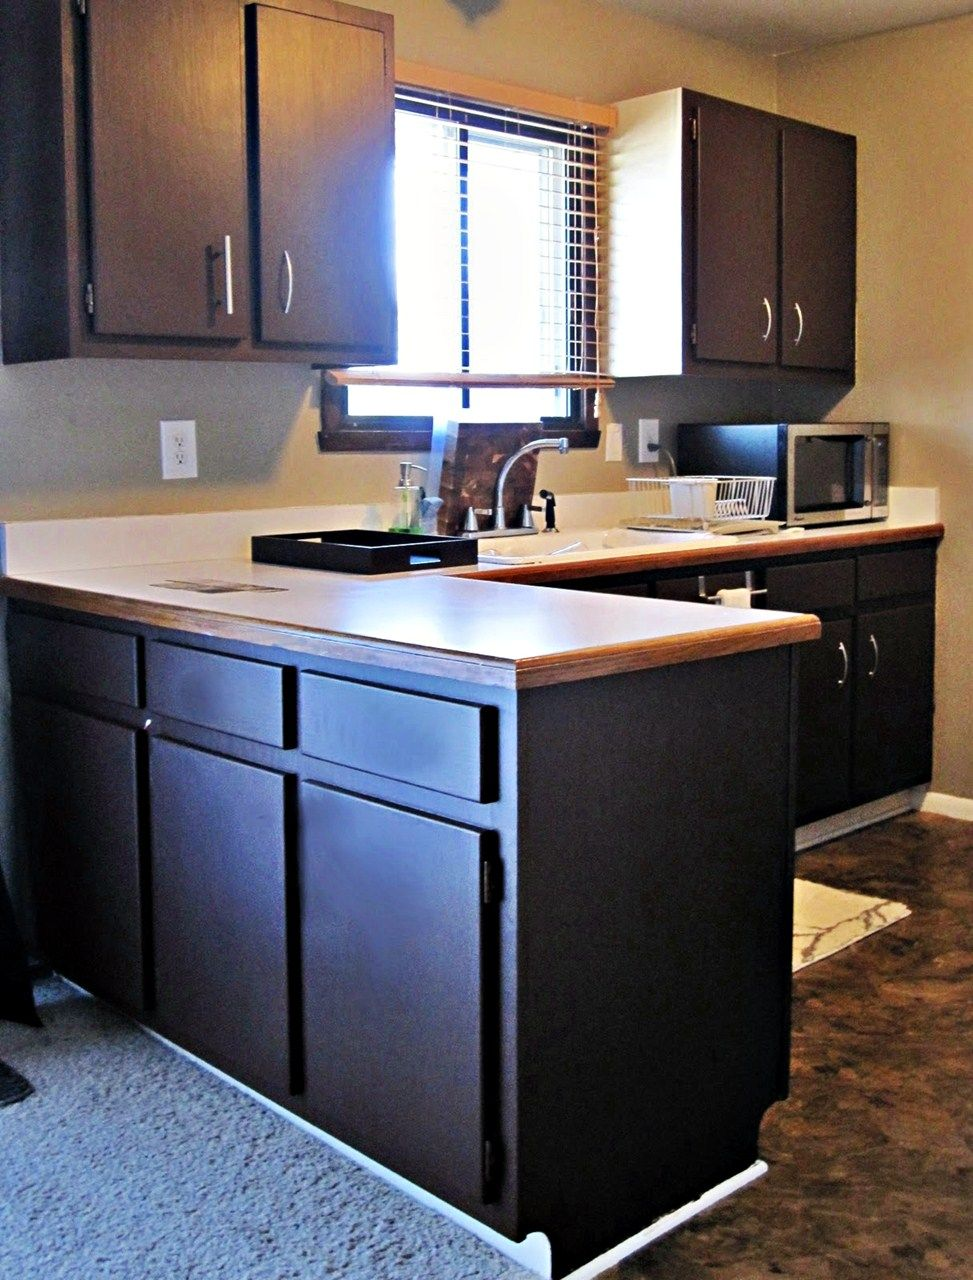 Painting your kitchen cabinets black - Ideas Kitchen Cabinet Paint Kitchen Cabinet Painters Kitchen Cabinet Painting Cost Home Improvement